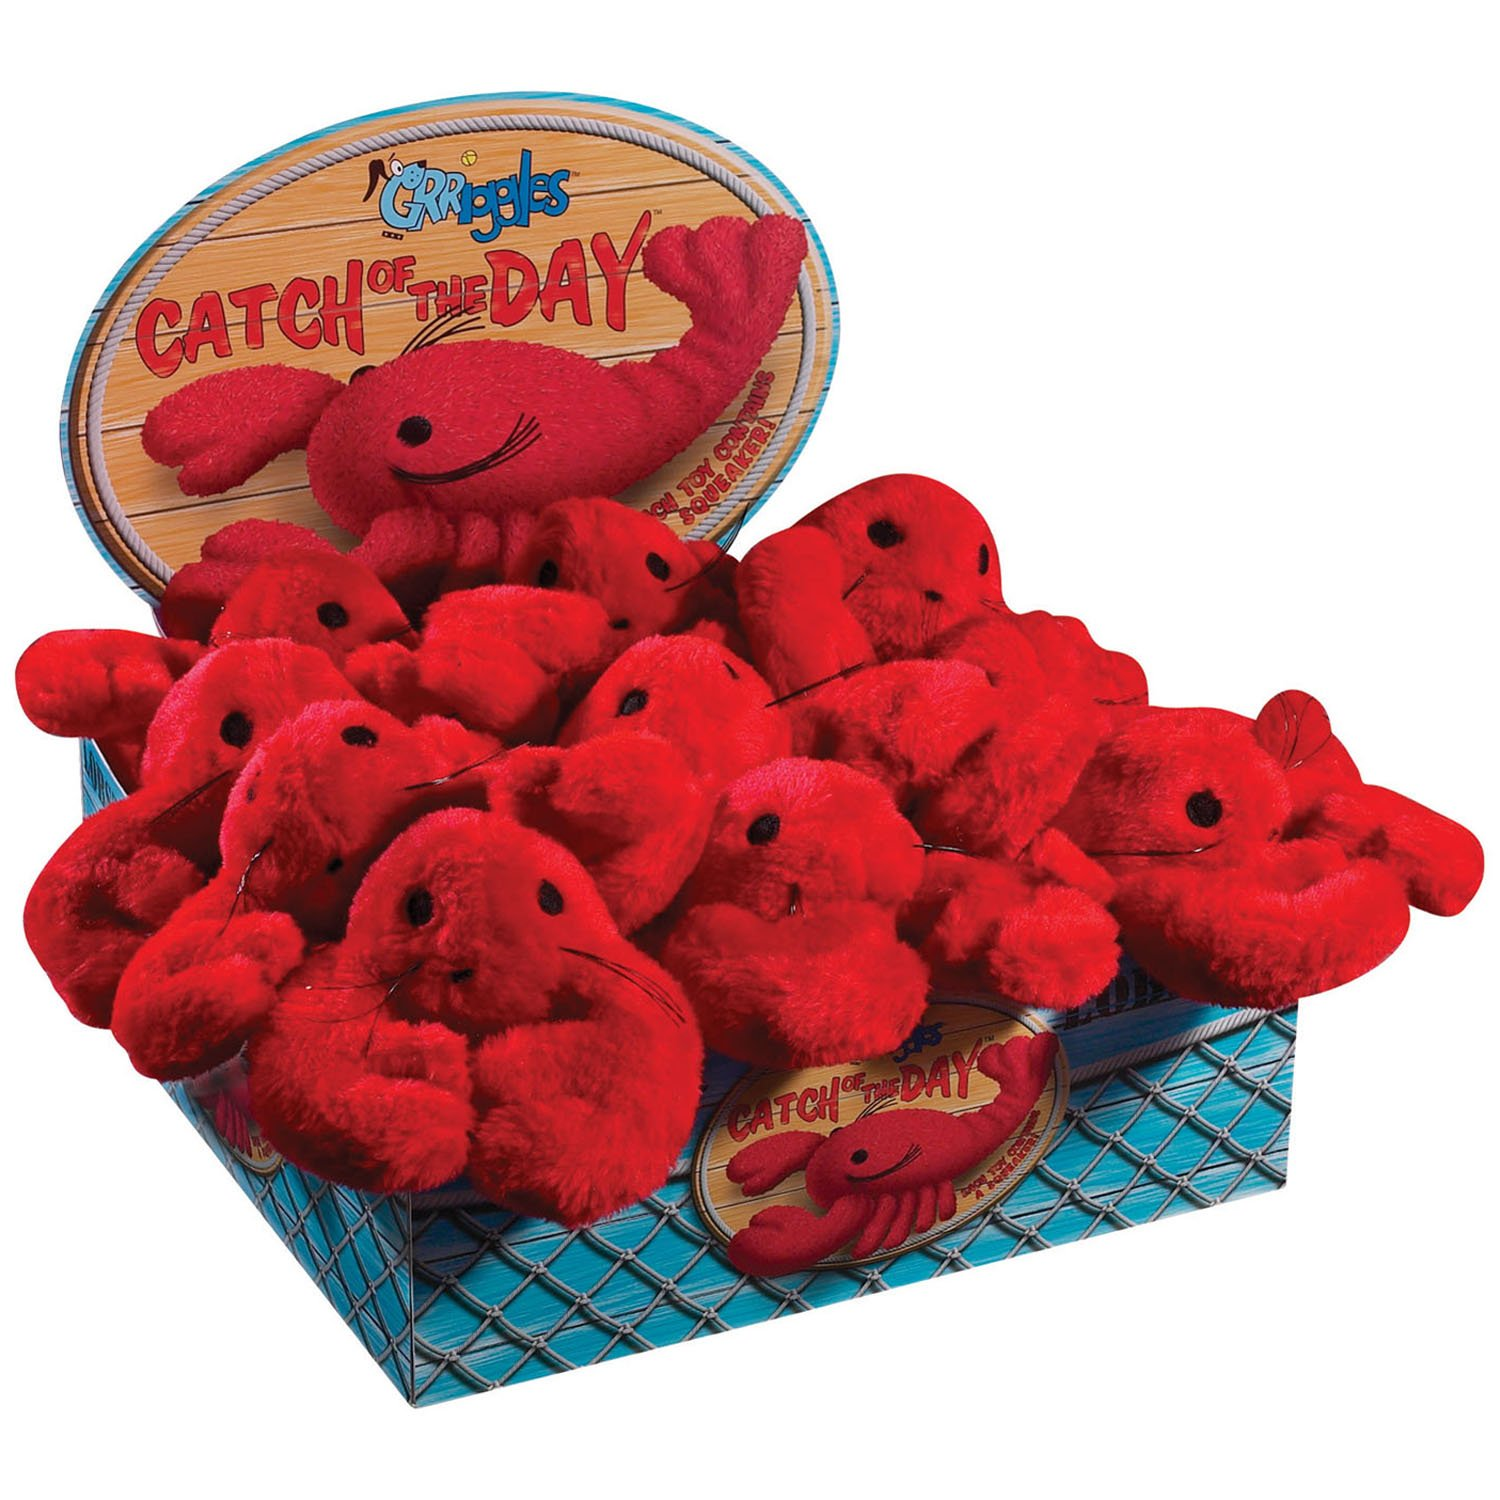 Grriggles Catch of Day Lobster 12-Pack